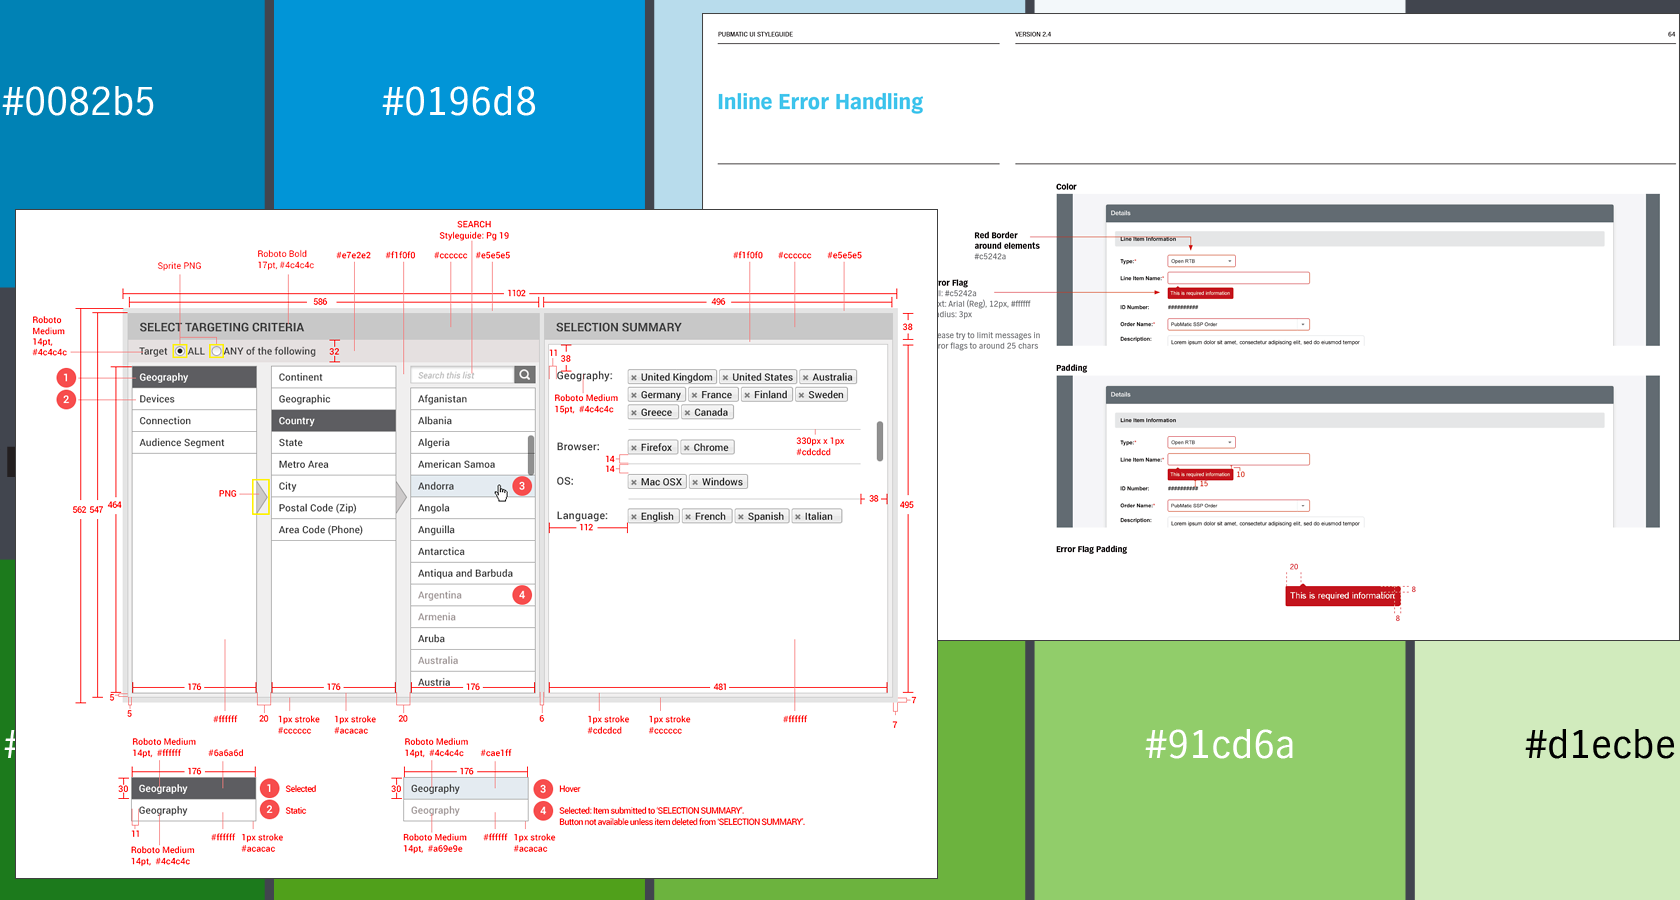 Styleguides and UX specifications are a UX deliverable and part of the UX design process